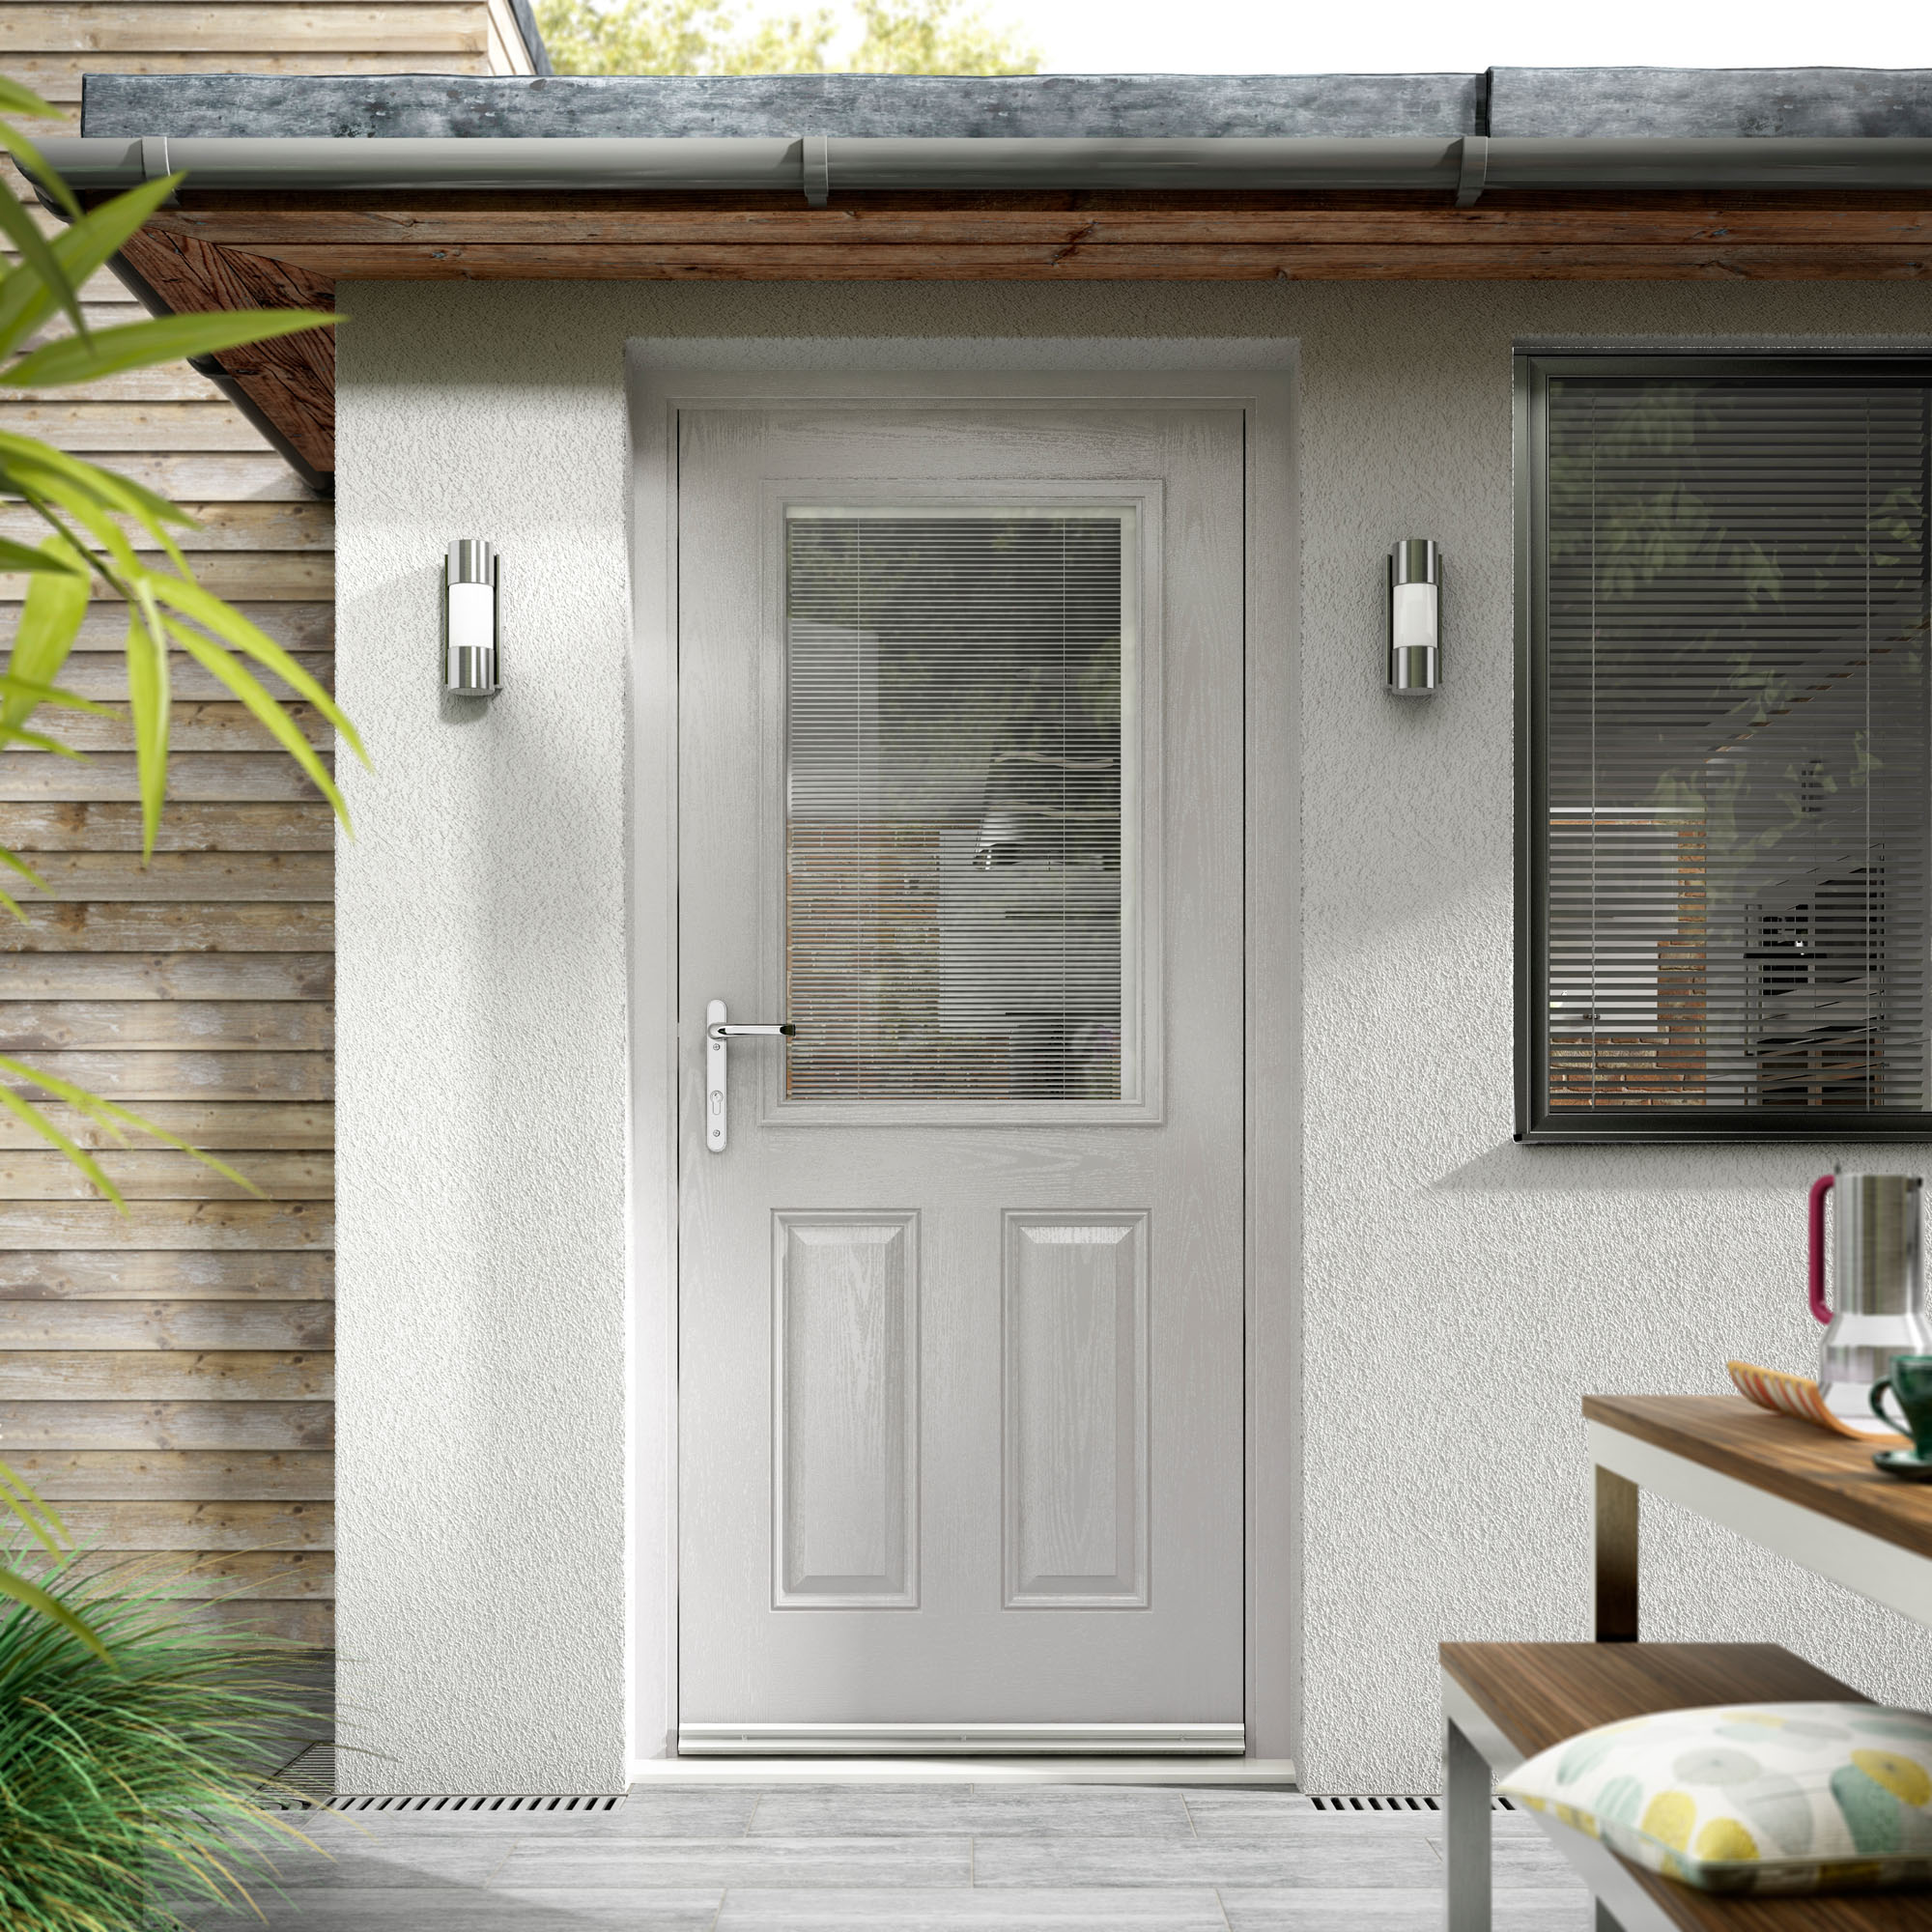 Doors & Fairview Door u0026 Fairview Door Sales Is A Family-owned And Operated ... pezcame.com